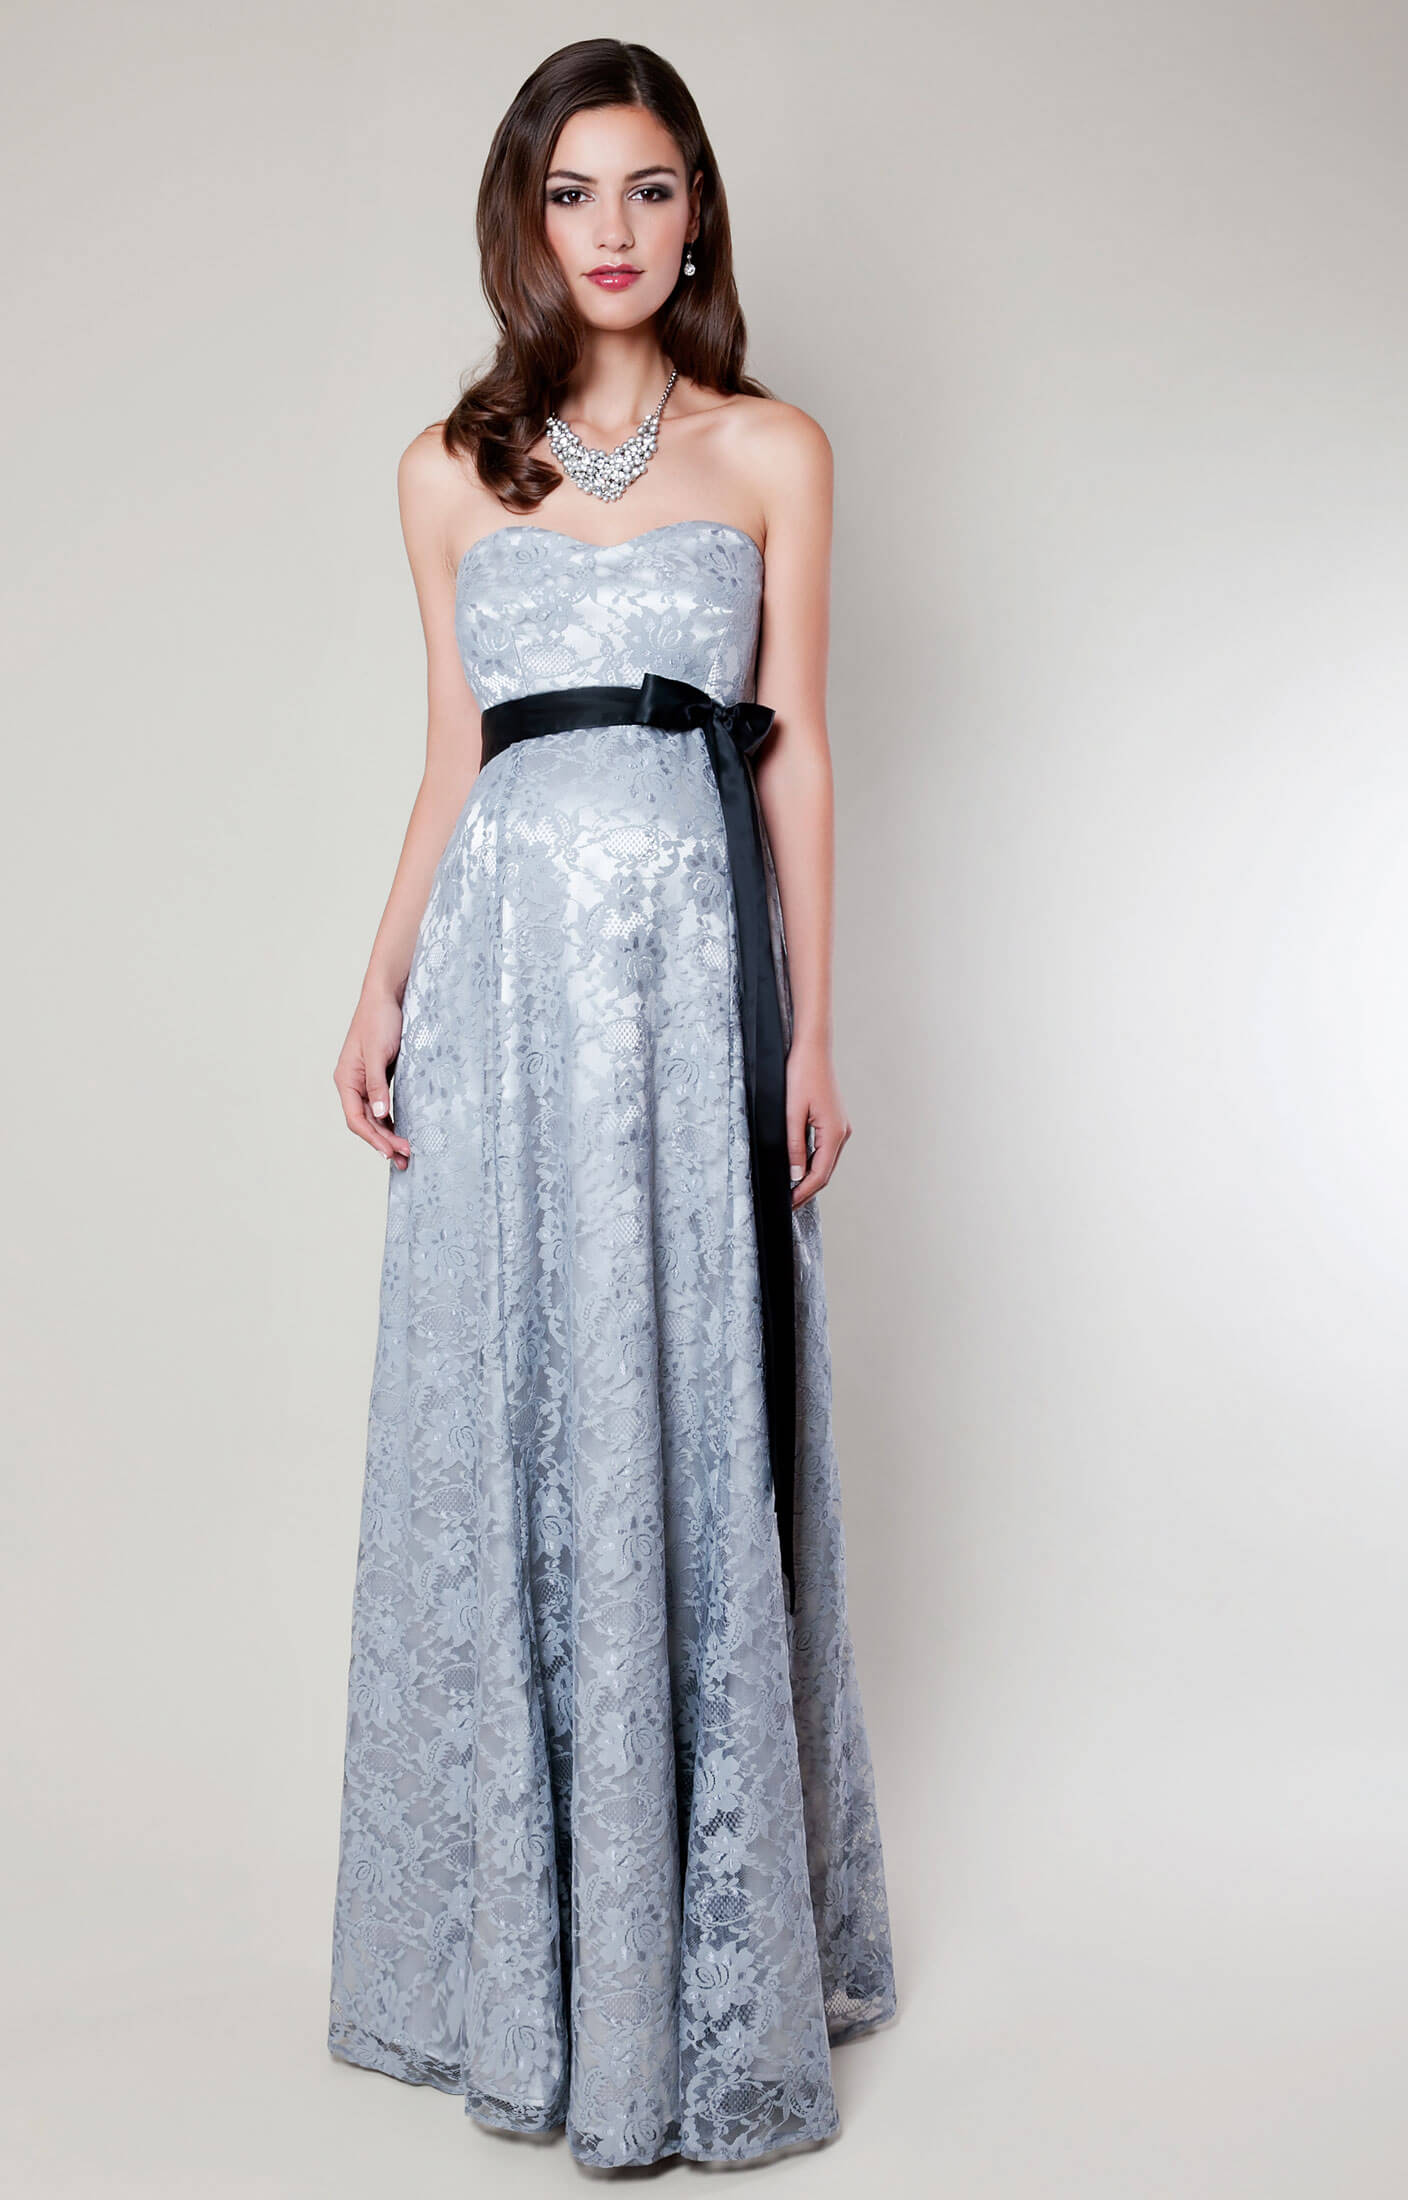 Olivia maternity gown silver mist maternity wedding dresses olivia maternity gown silver mist by tiffany rose ombrellifo Image collections